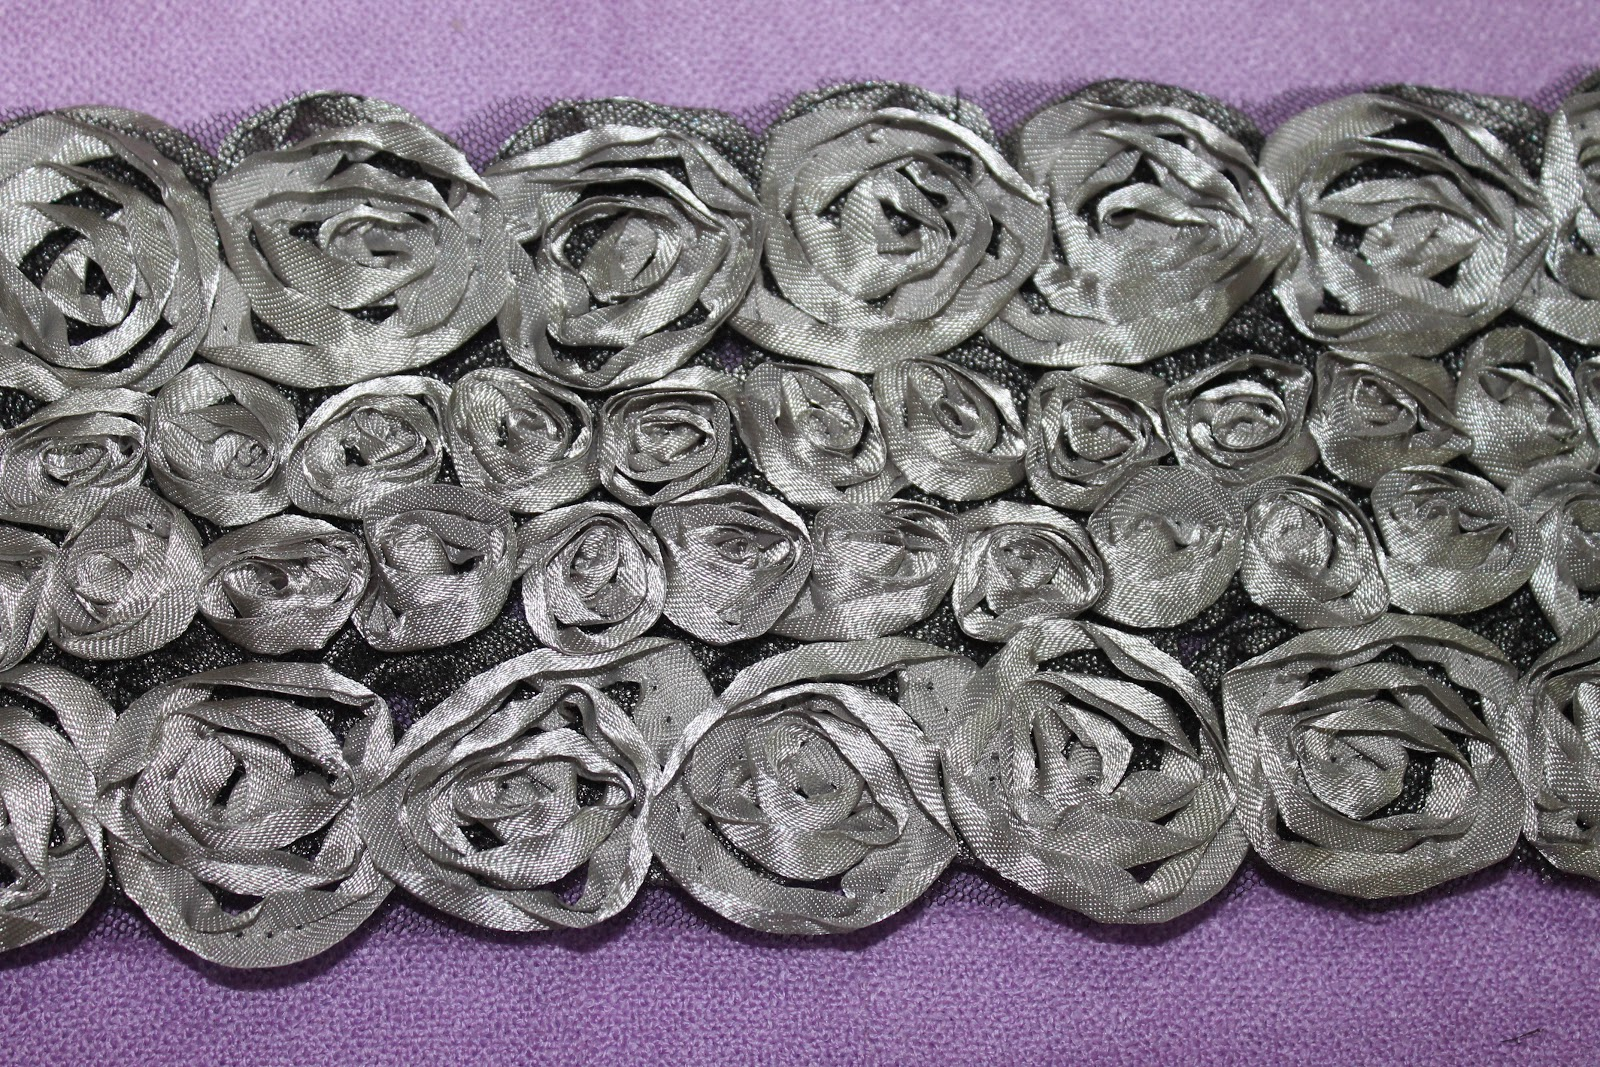 BORDER LACE 3D ROSES